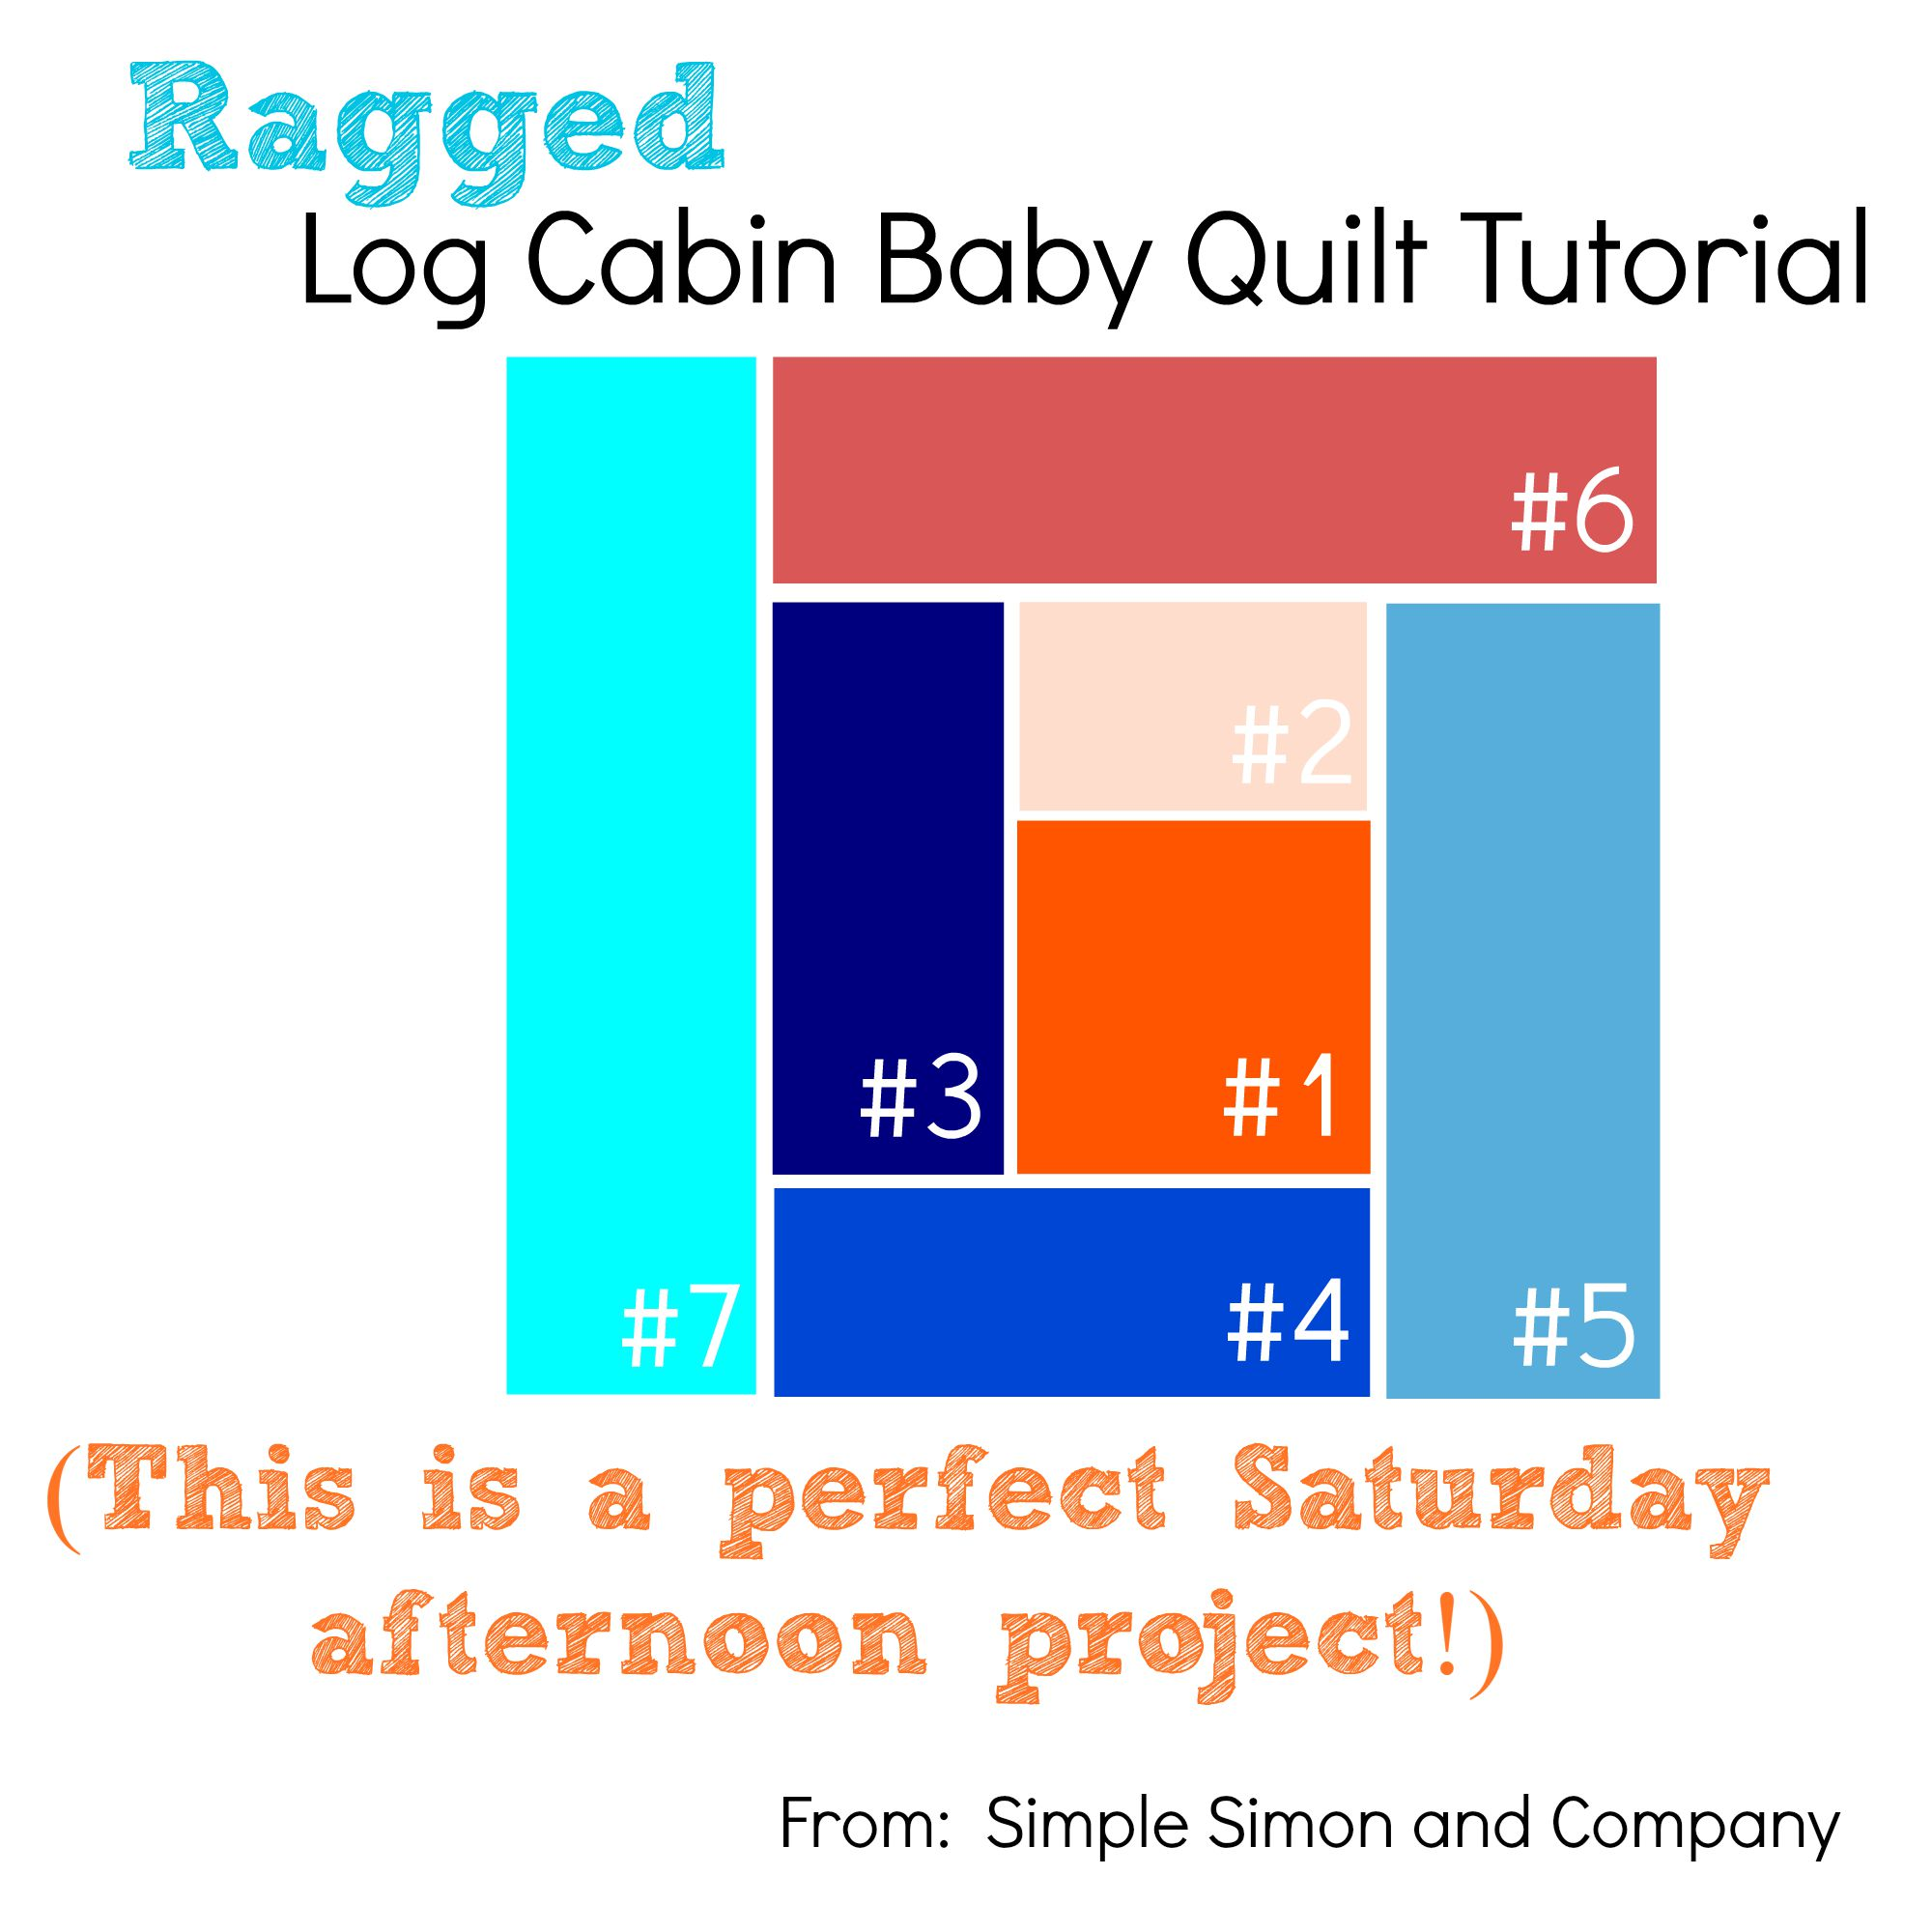 Ragged Log Cabin Baby Quilt Tutorial - Simple Simon and Company : log cabin baby quilt pattern - Adamdwight.com